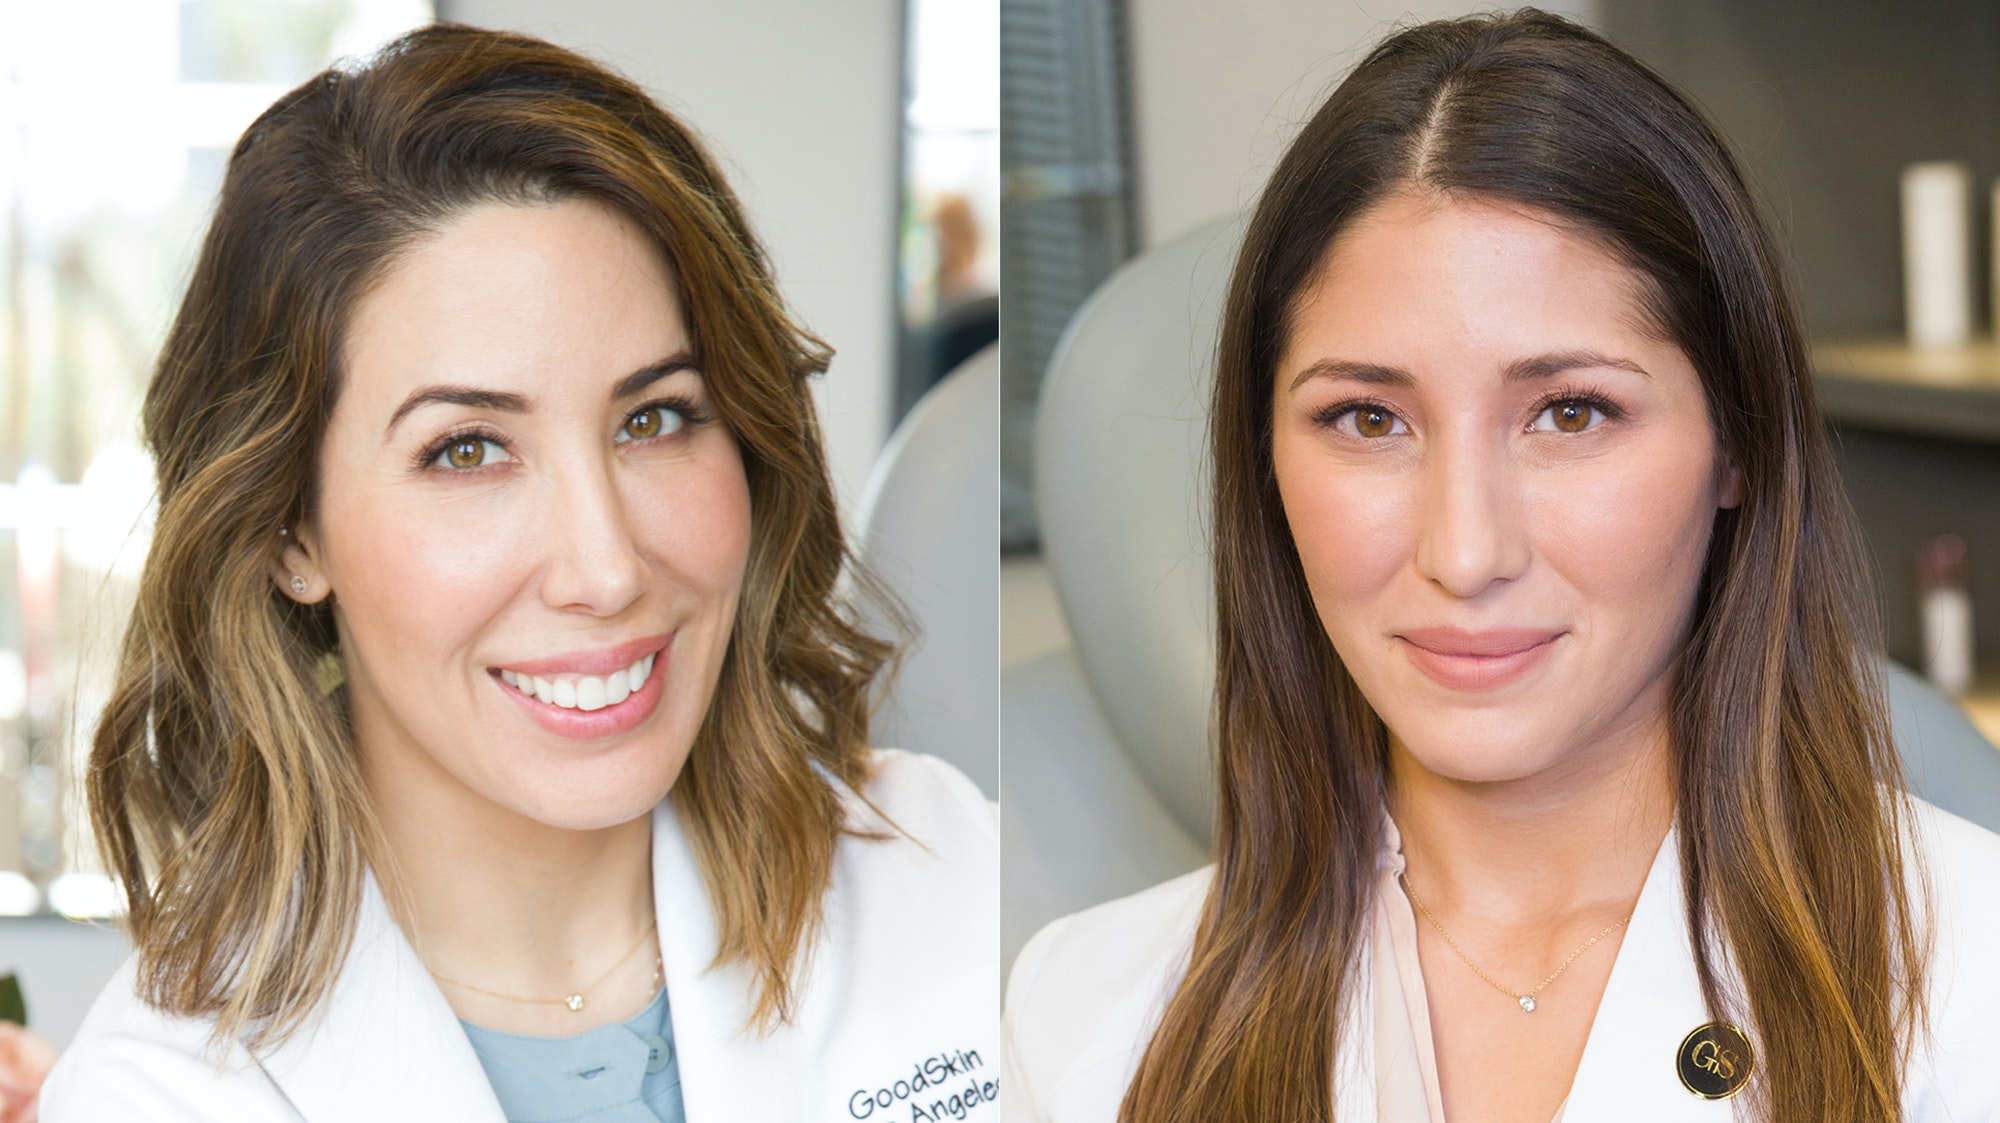 The Sisters Behind Los Angeles's GoodSkin Clinic Share the